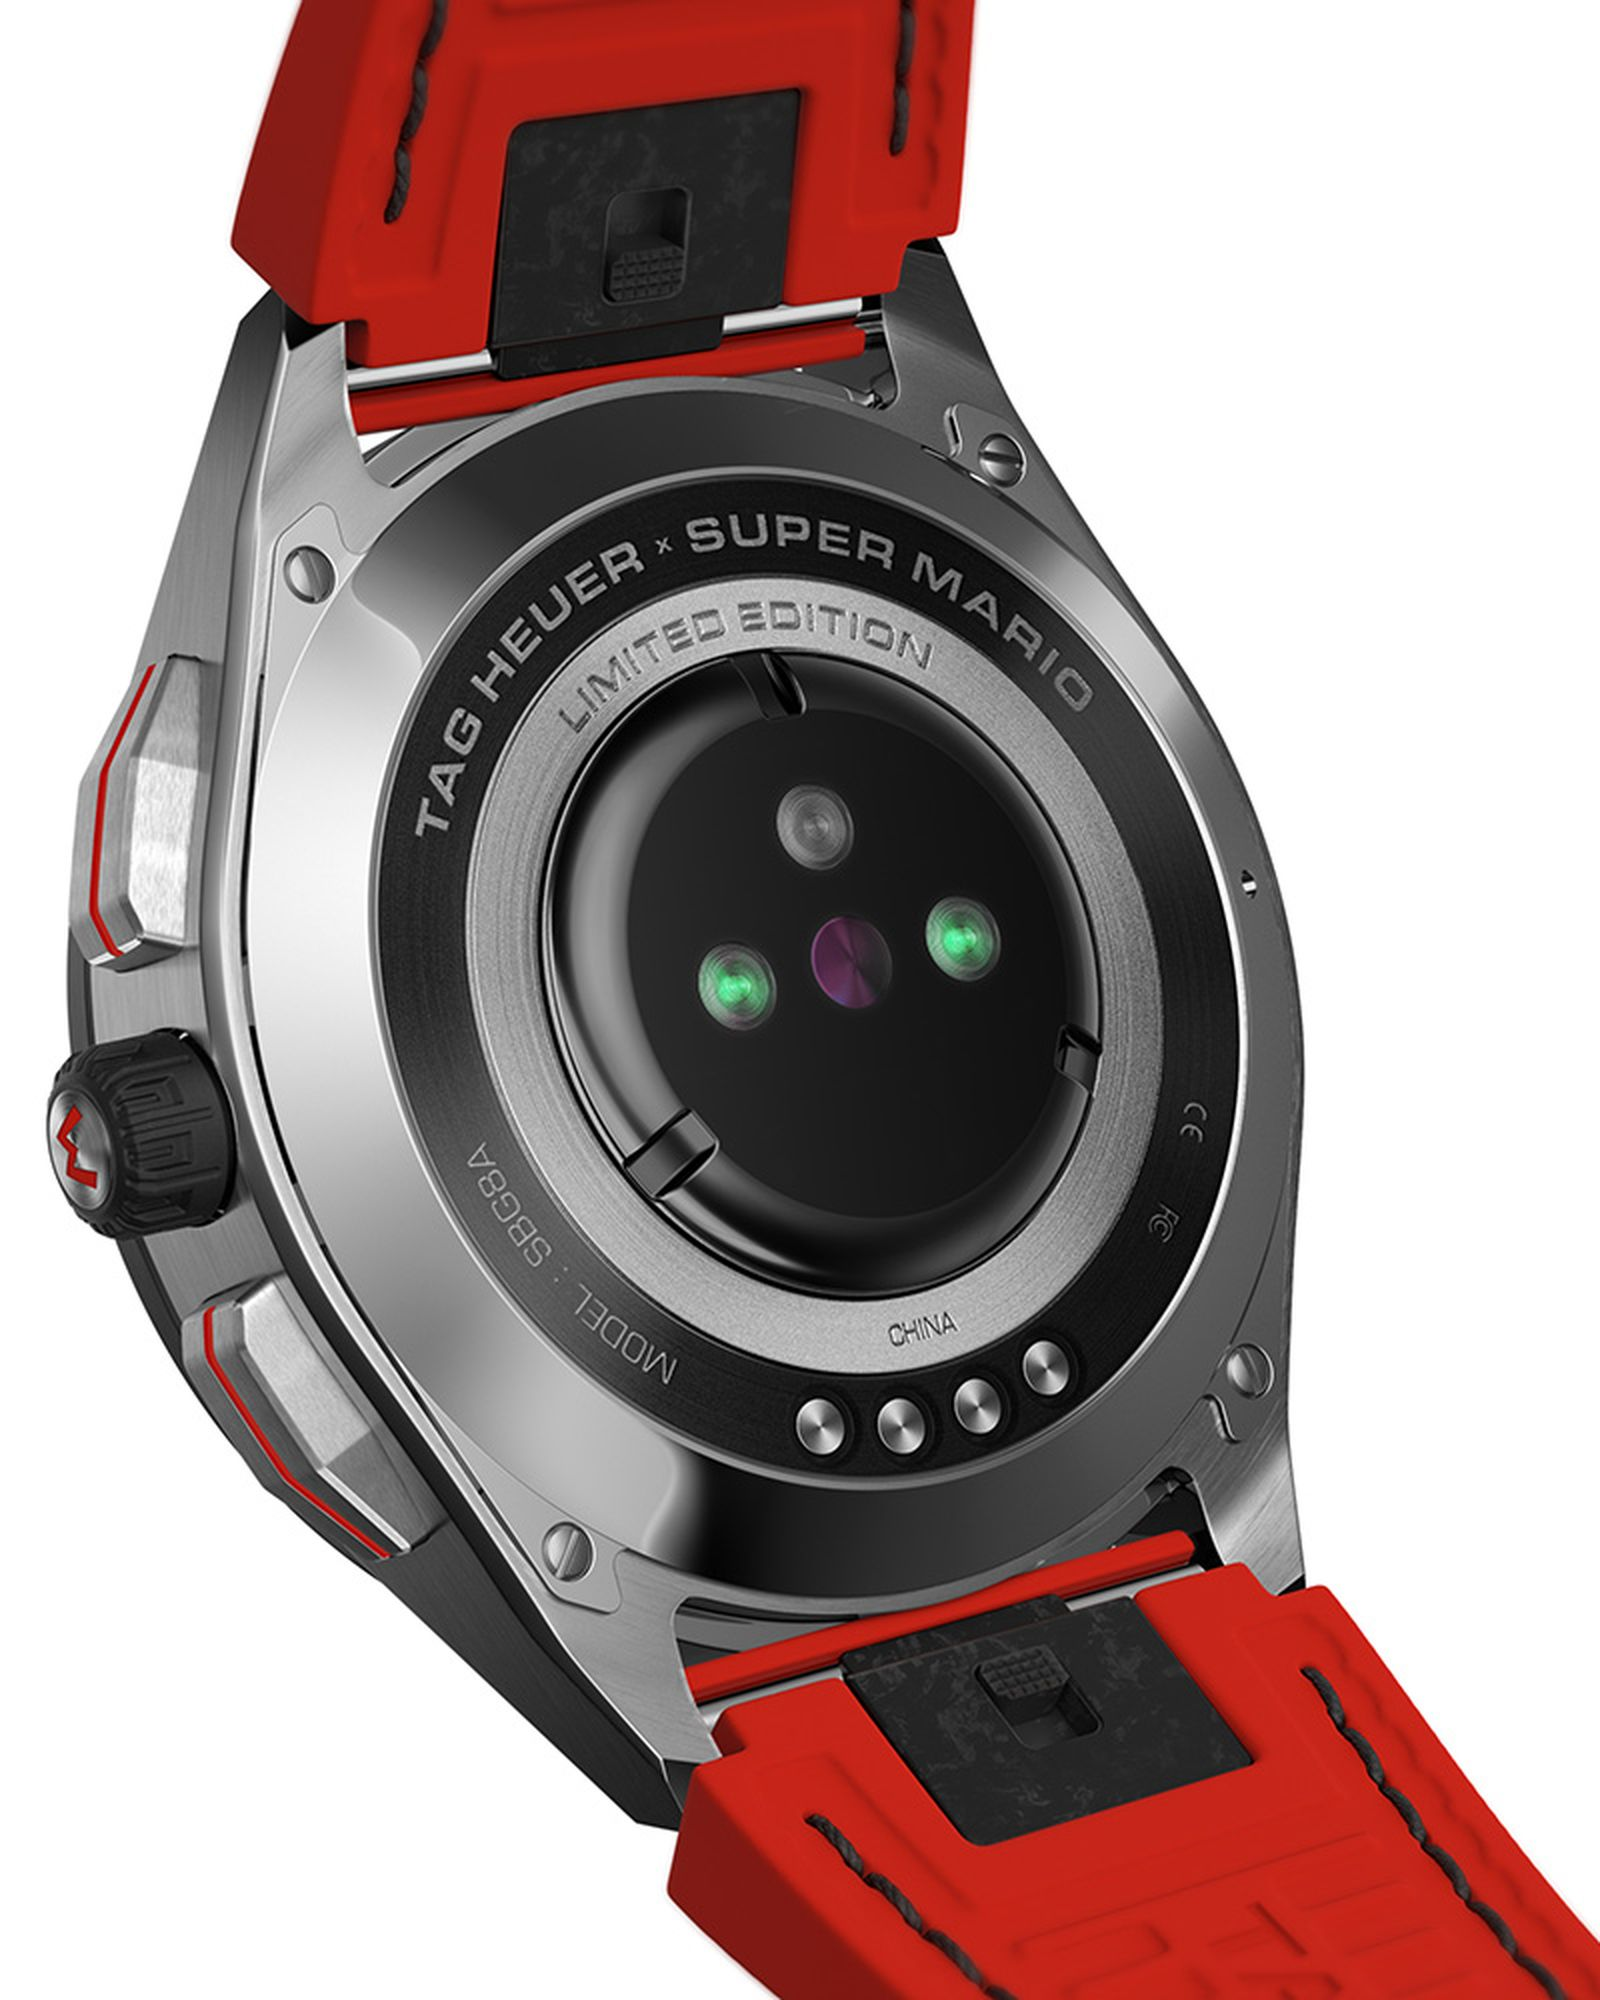 tag-heuer-super-mario-watch-collaboration-release-02